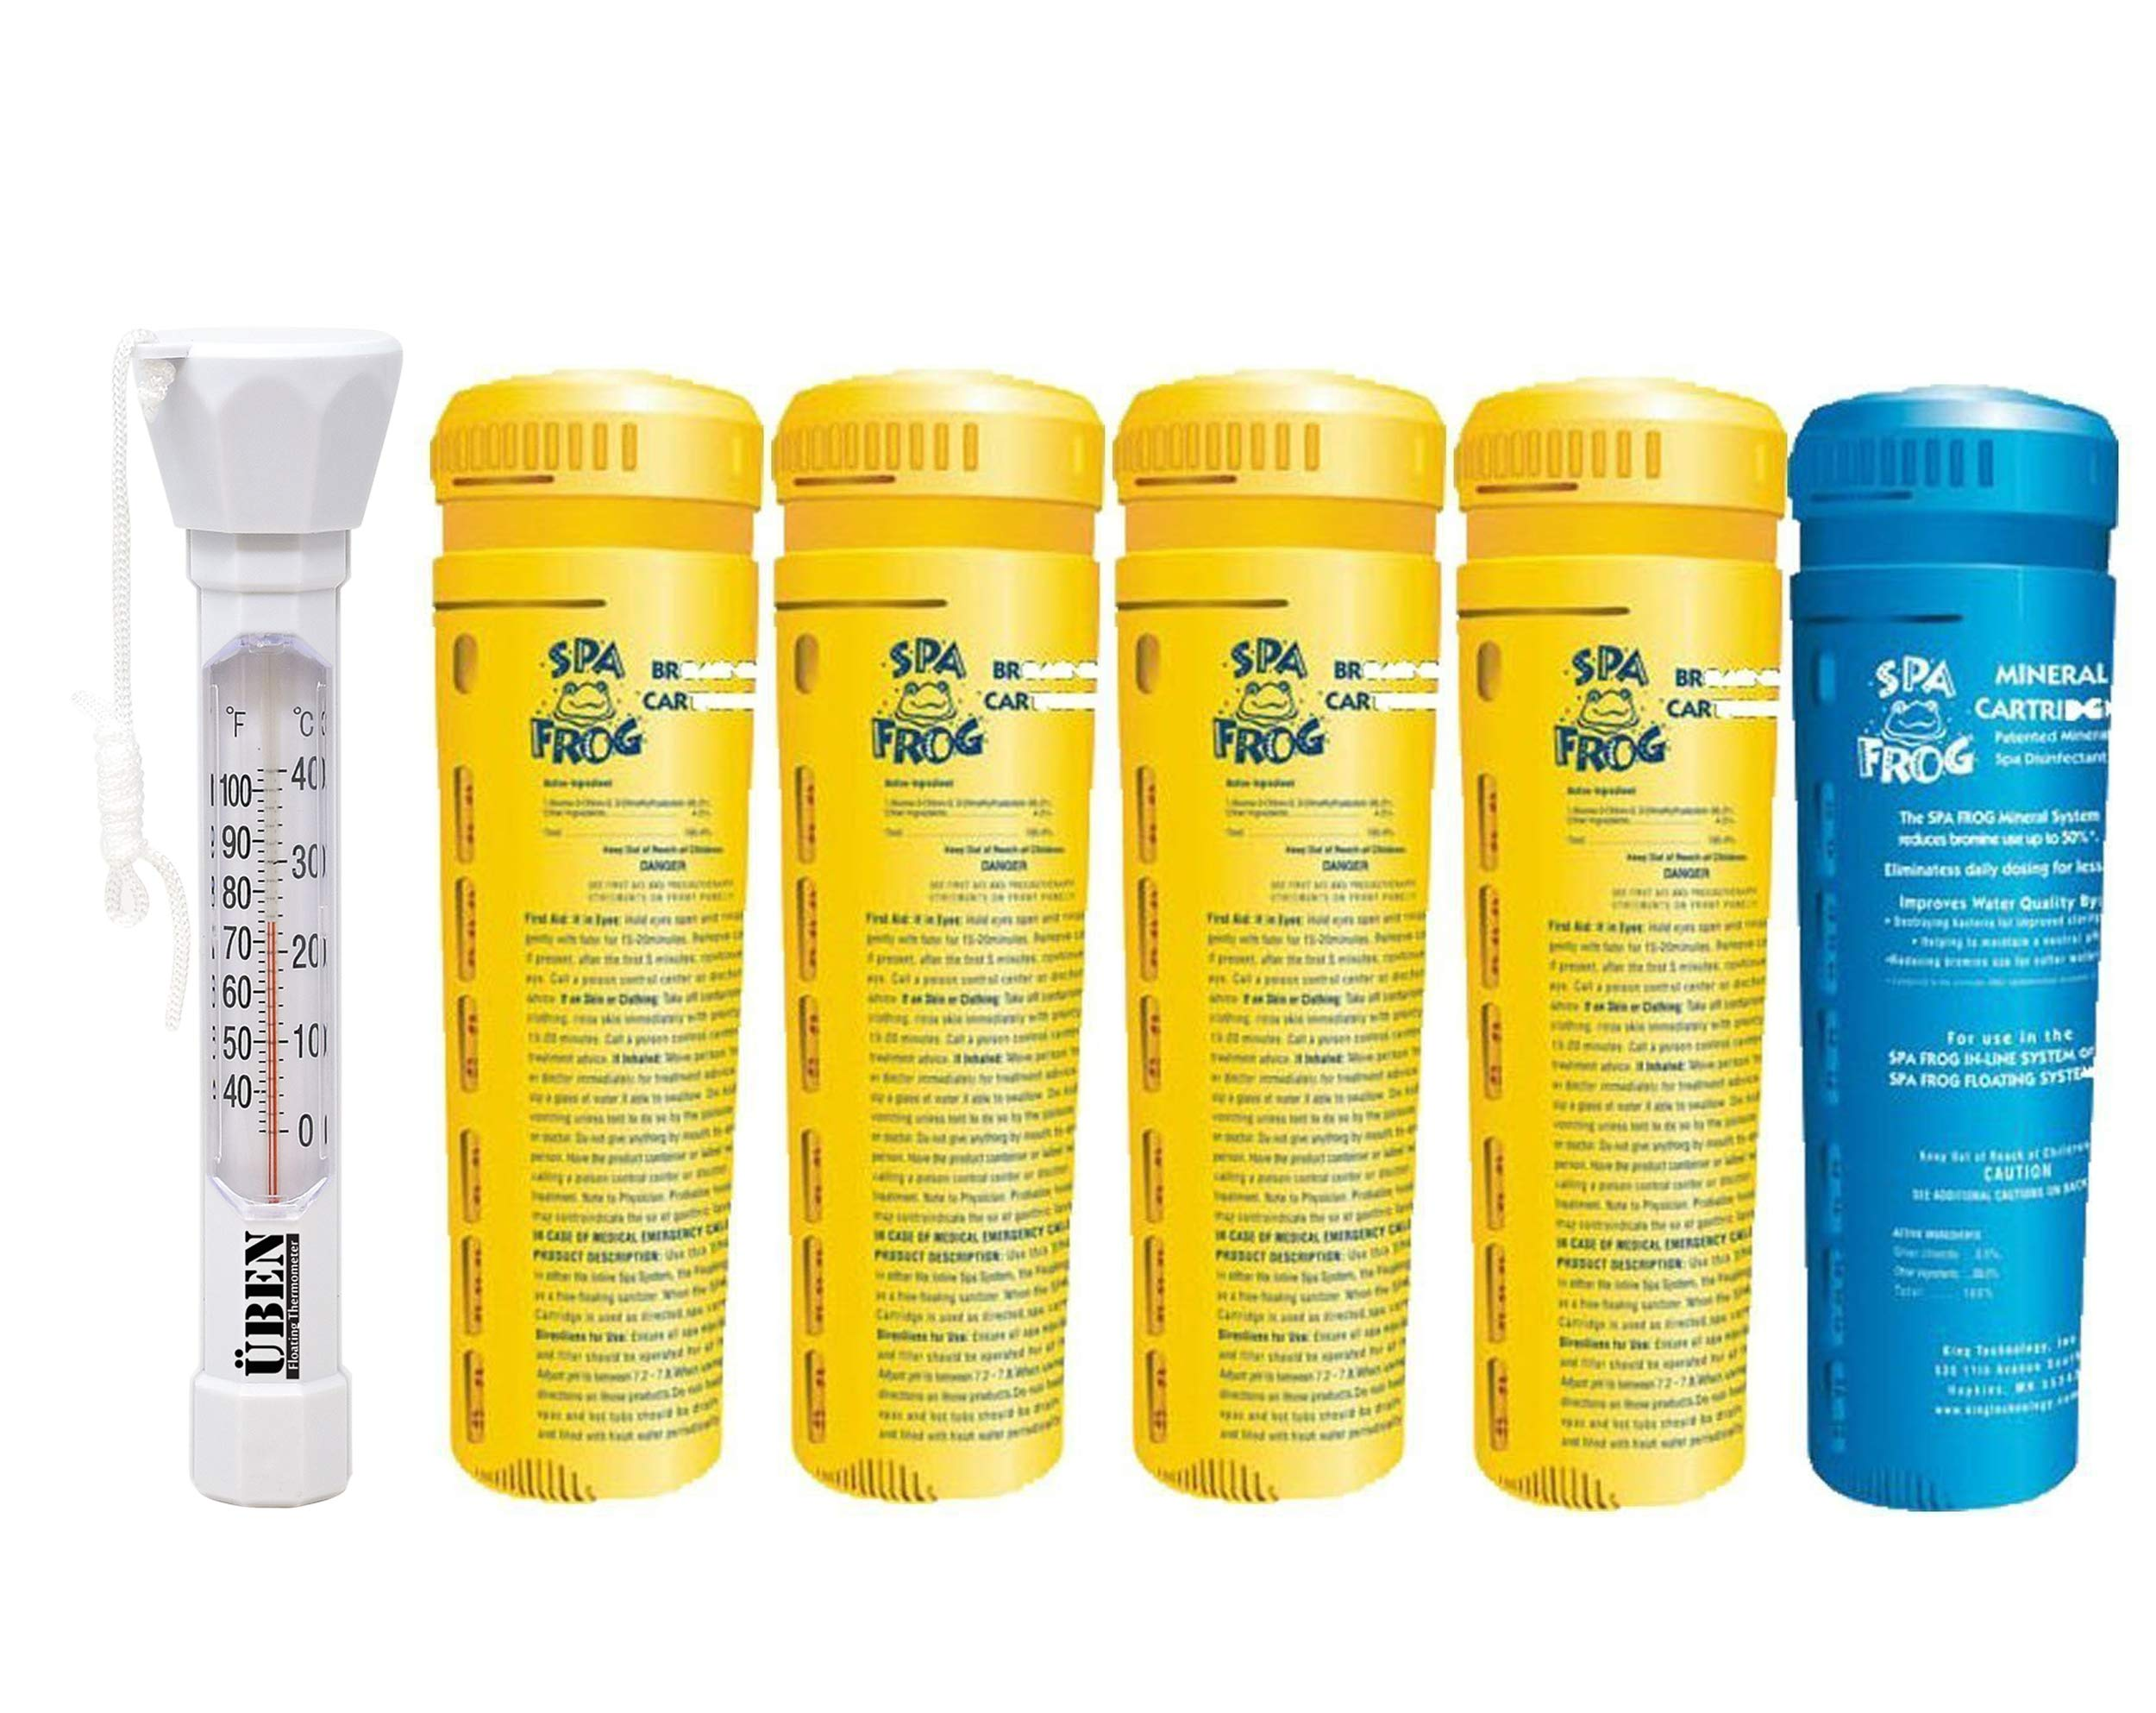 5 pack spa frog replacement cartridges, 4 bromine/ 1 mineral, Bundled with Floating Buoy Üben Pool Thermometer by SPA FROG